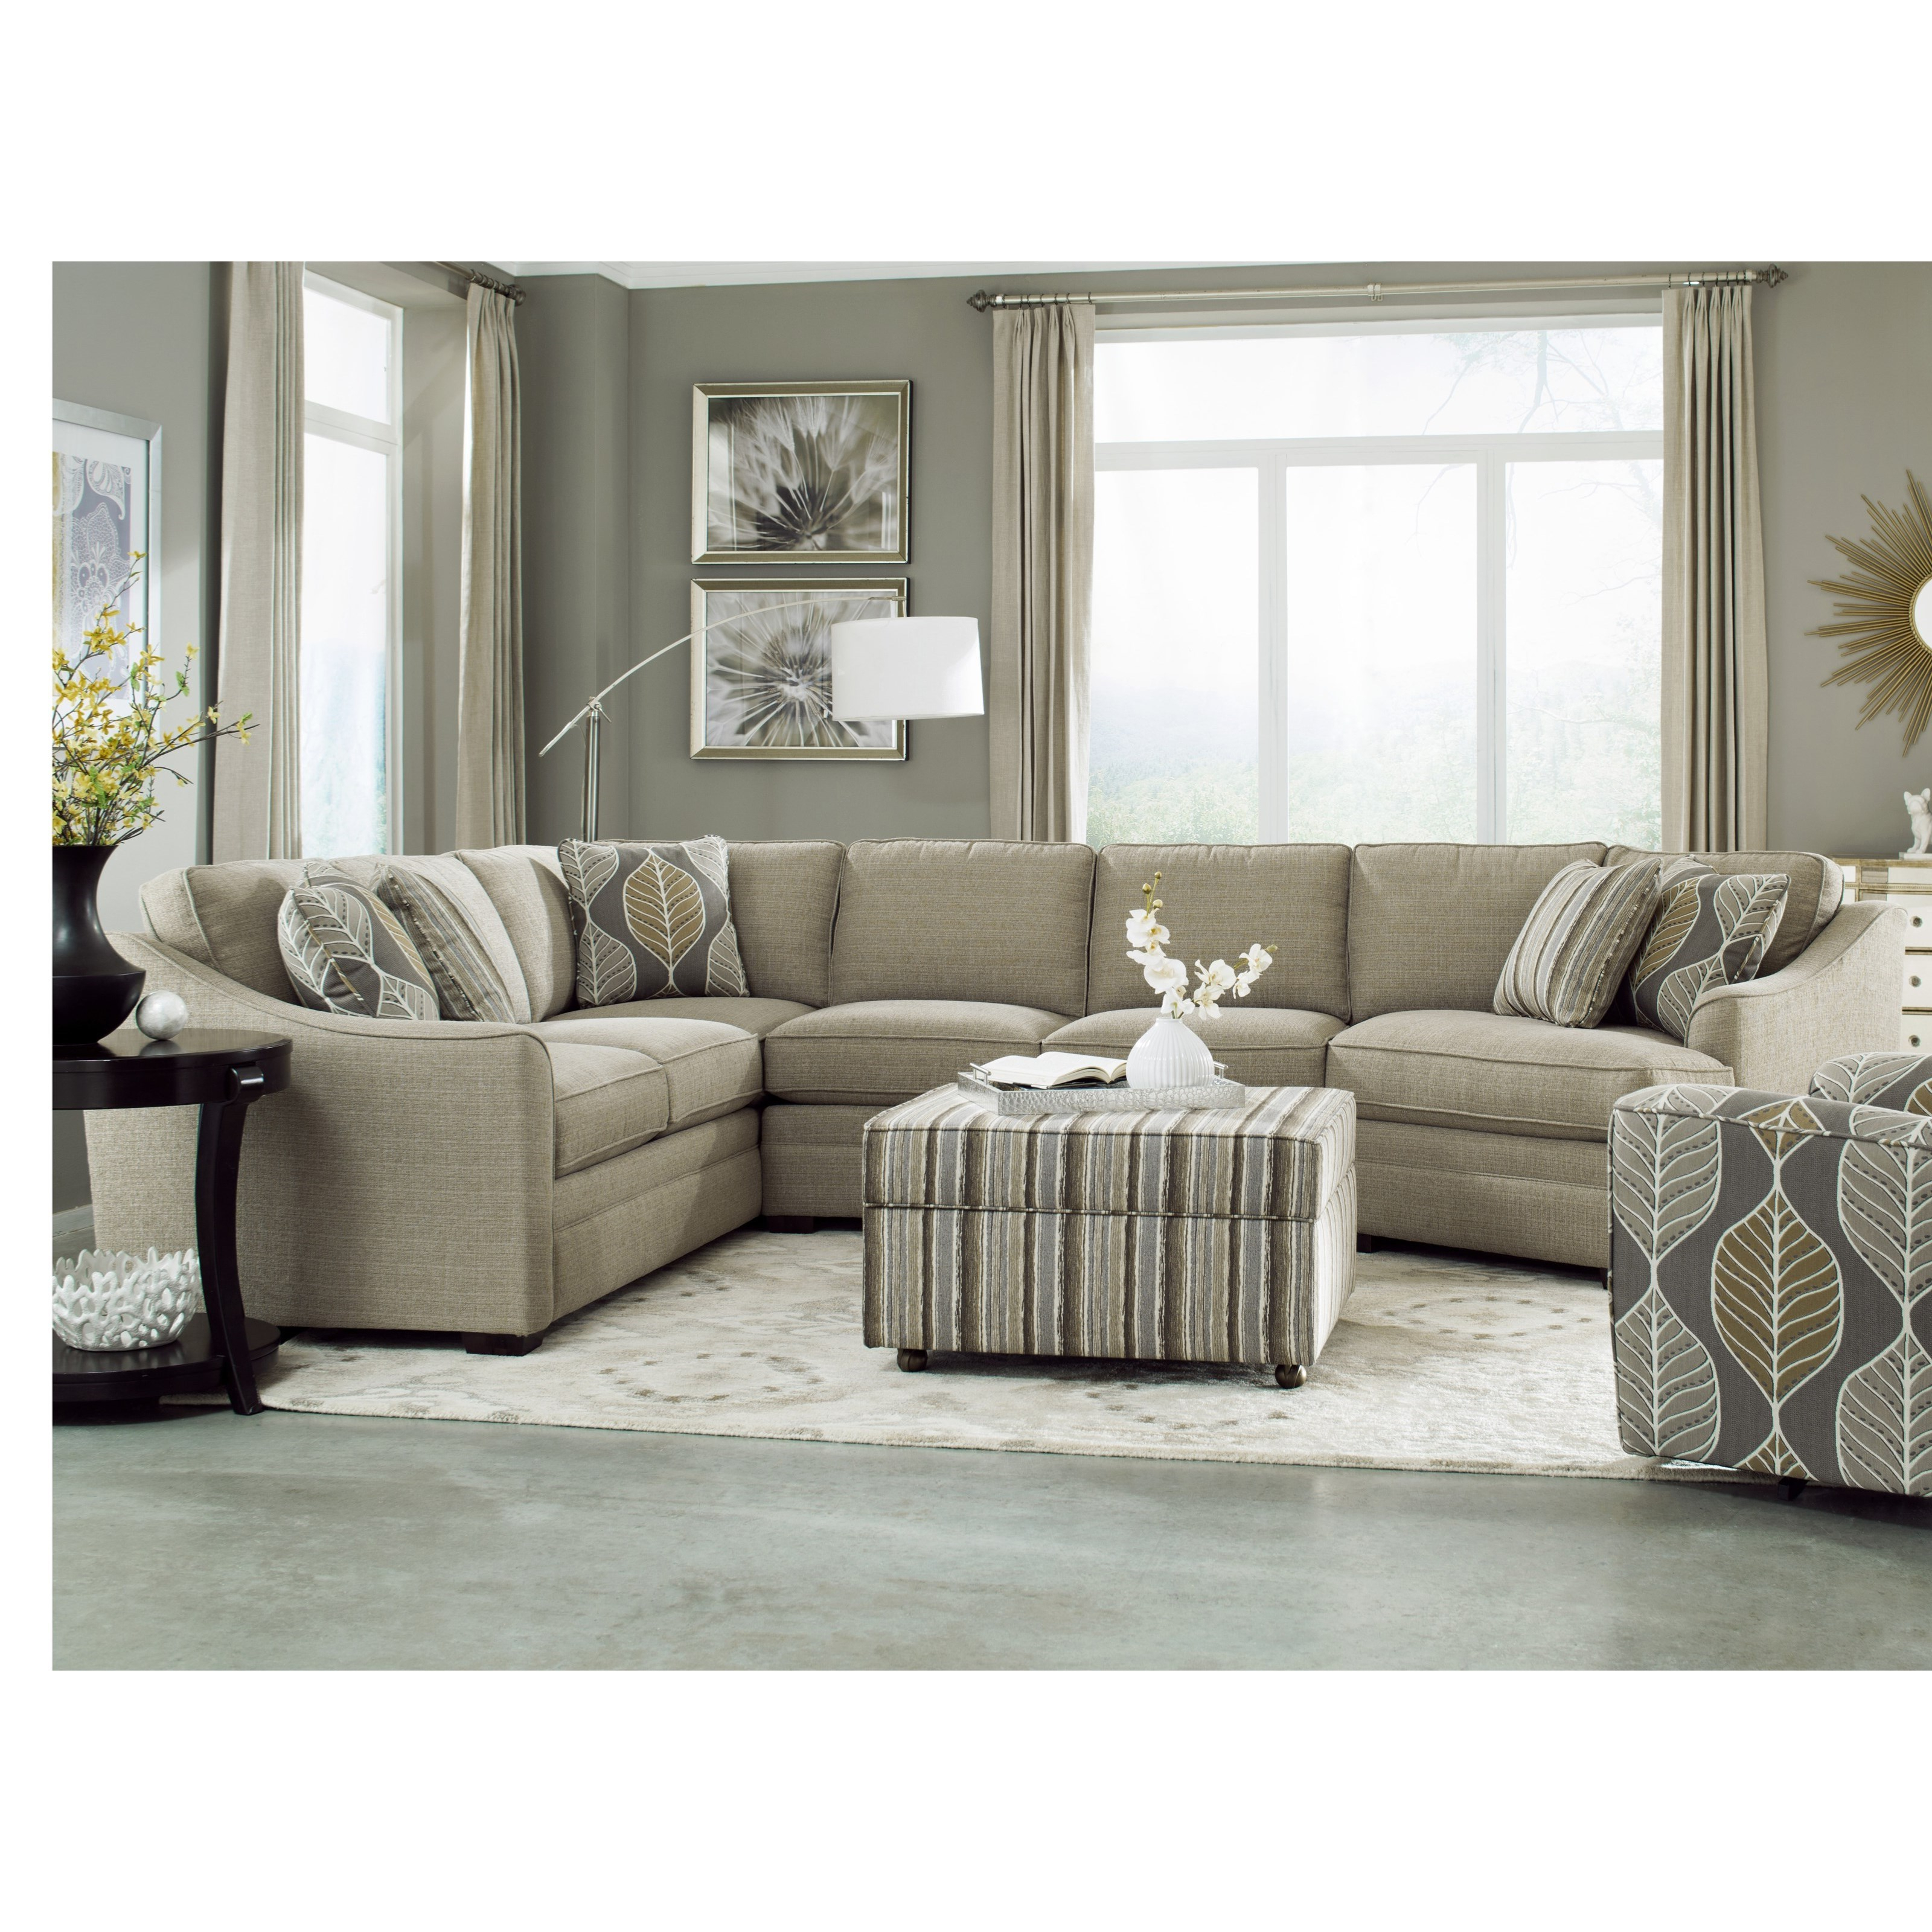 Tatum Dark Grey 2 Piece Sectionals With Laf Chaise Inside Well Known Hickory Craft F9 Custom Collection <B>Customizable</b> 3 Piece (Gallery 17 of 20)